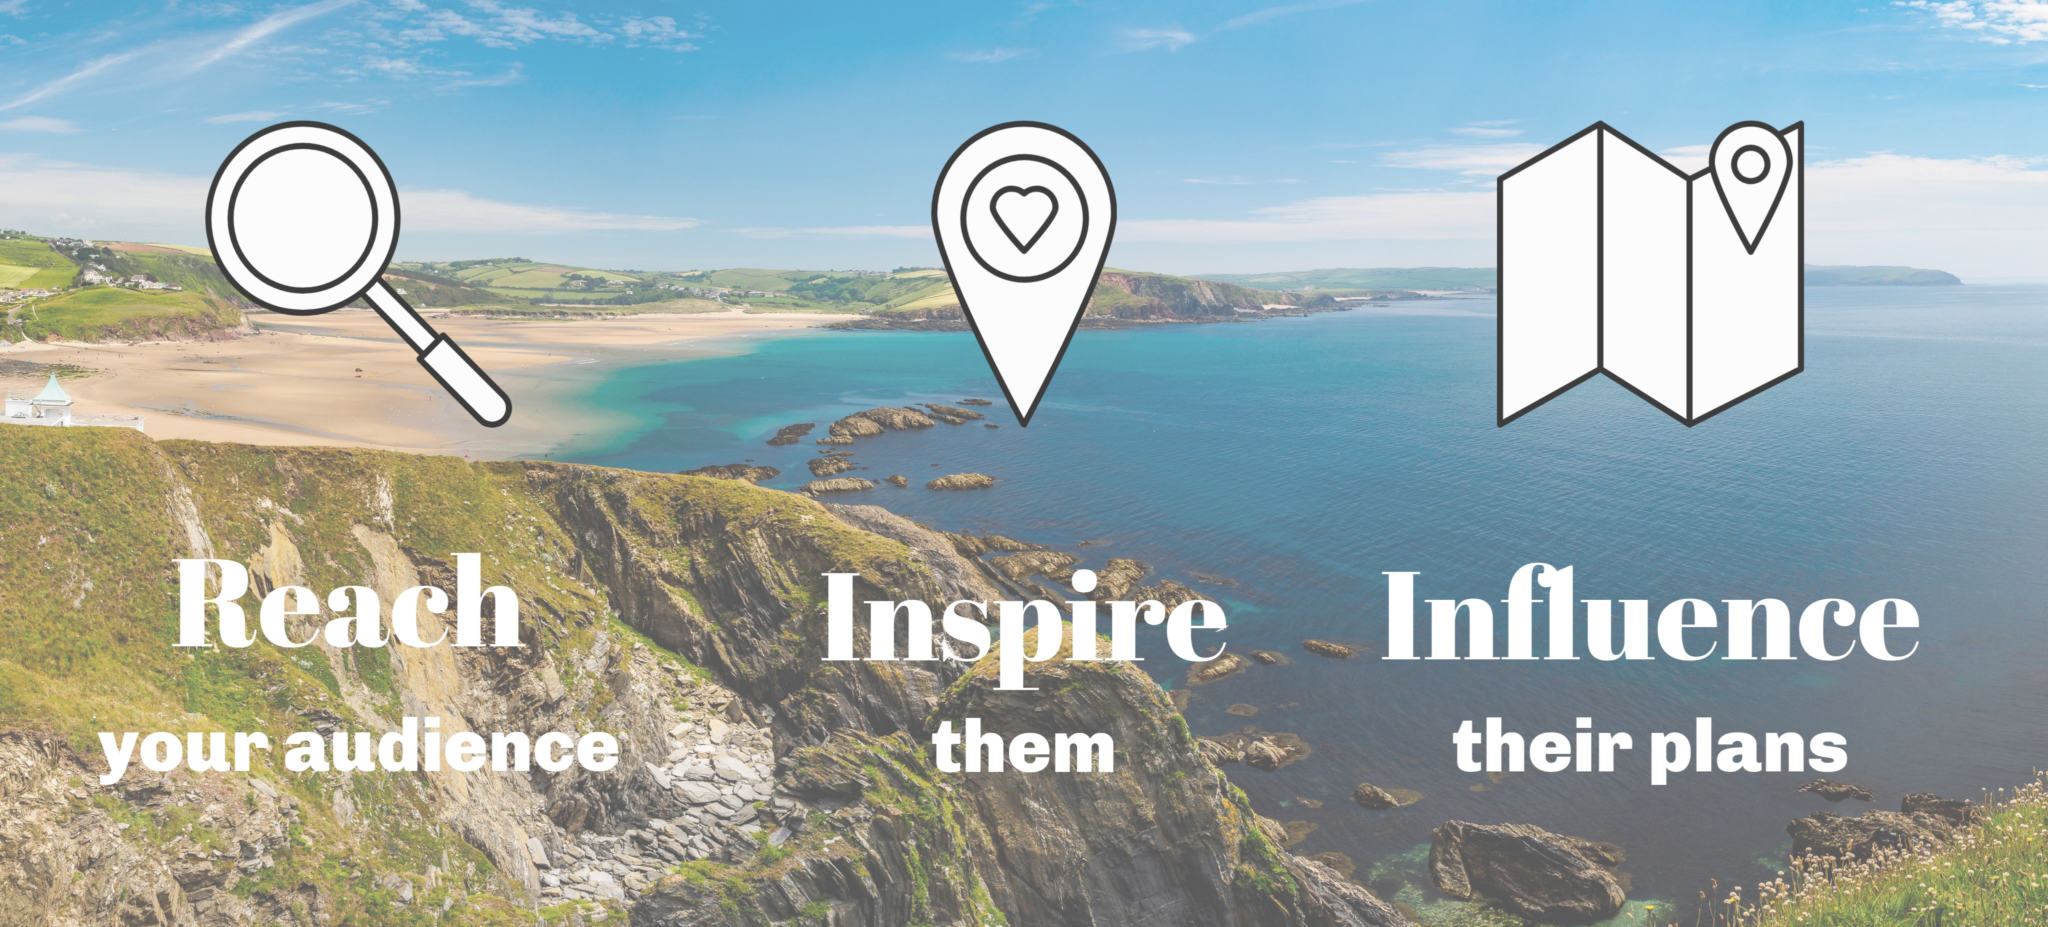 Travel Influence reach inspire influence